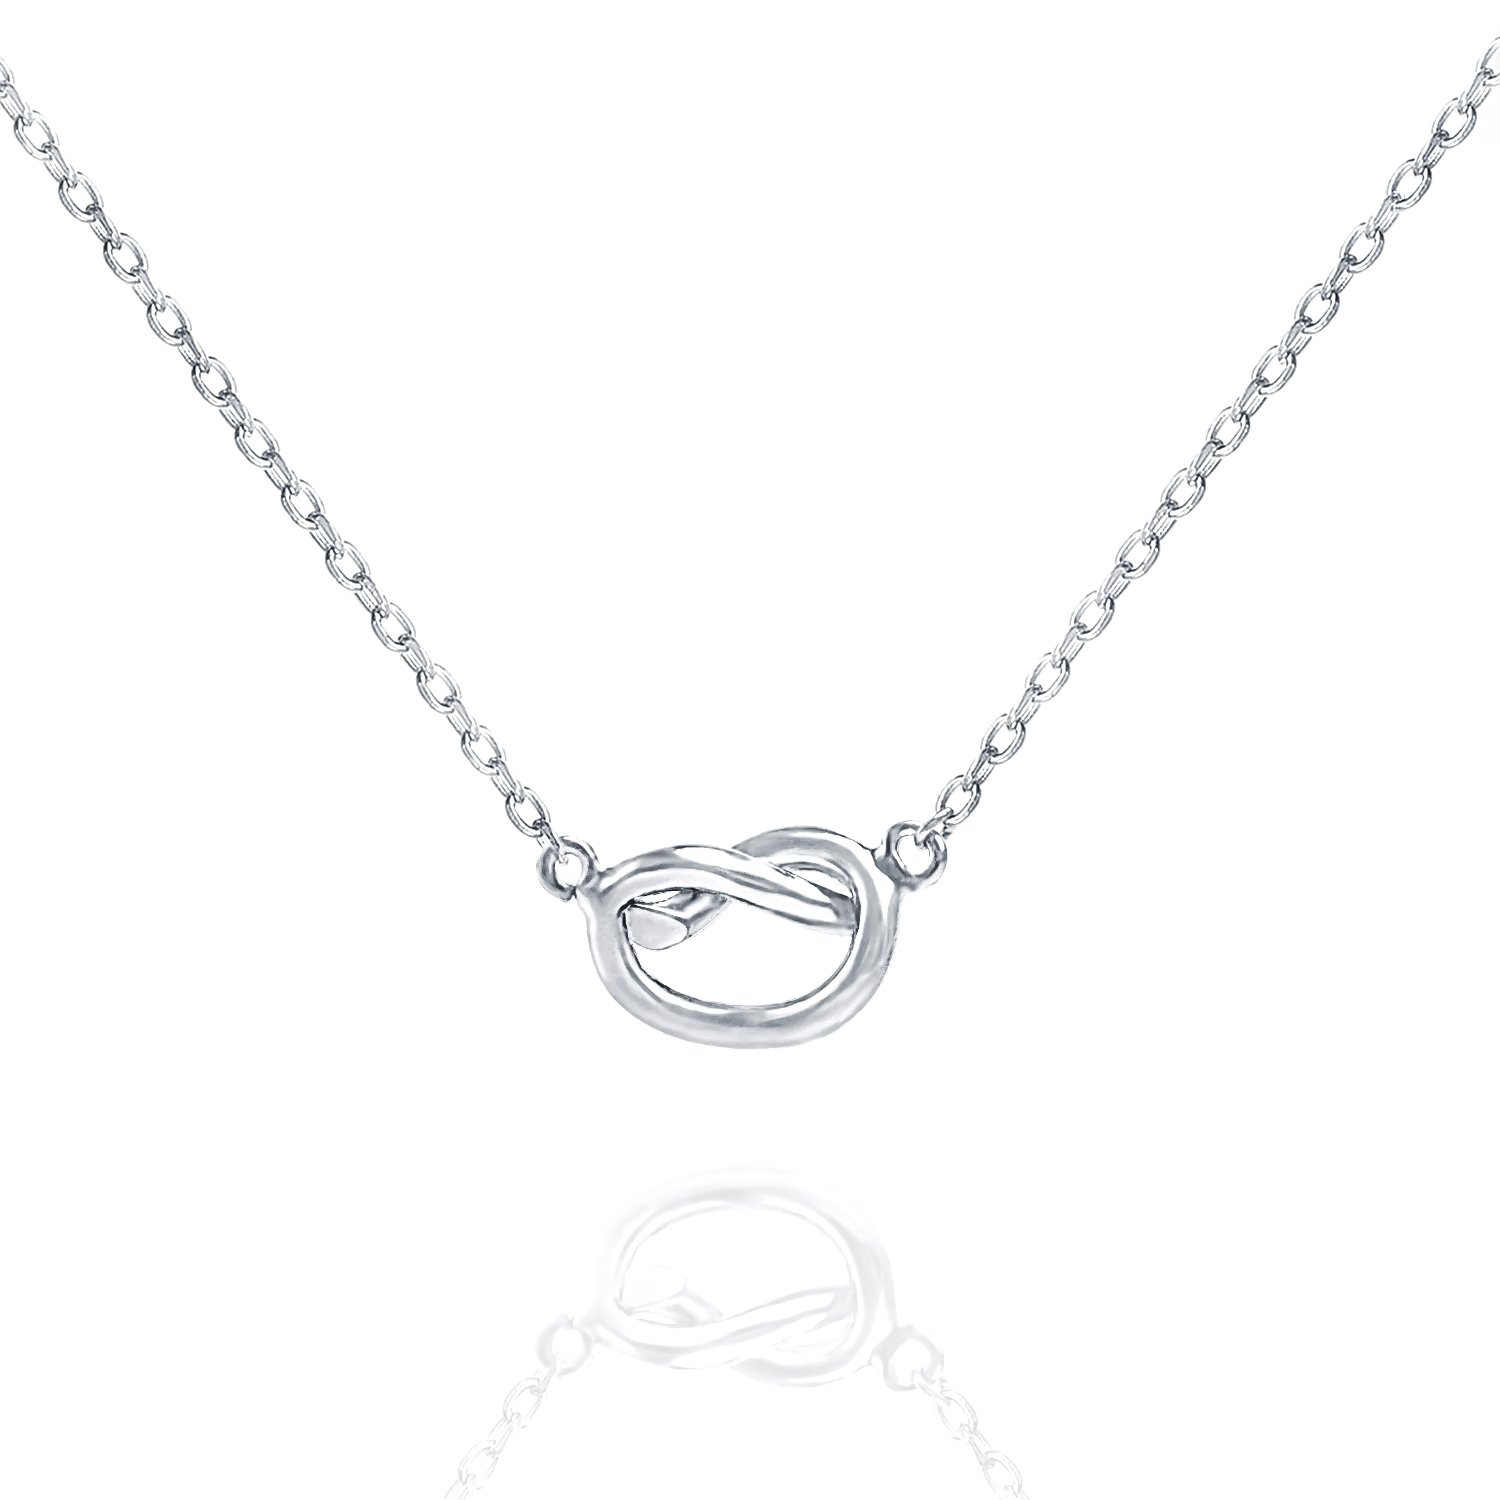 PAVOI 14K Yellow Gold Plated Infiity Love Knot Necklace Pendant - White